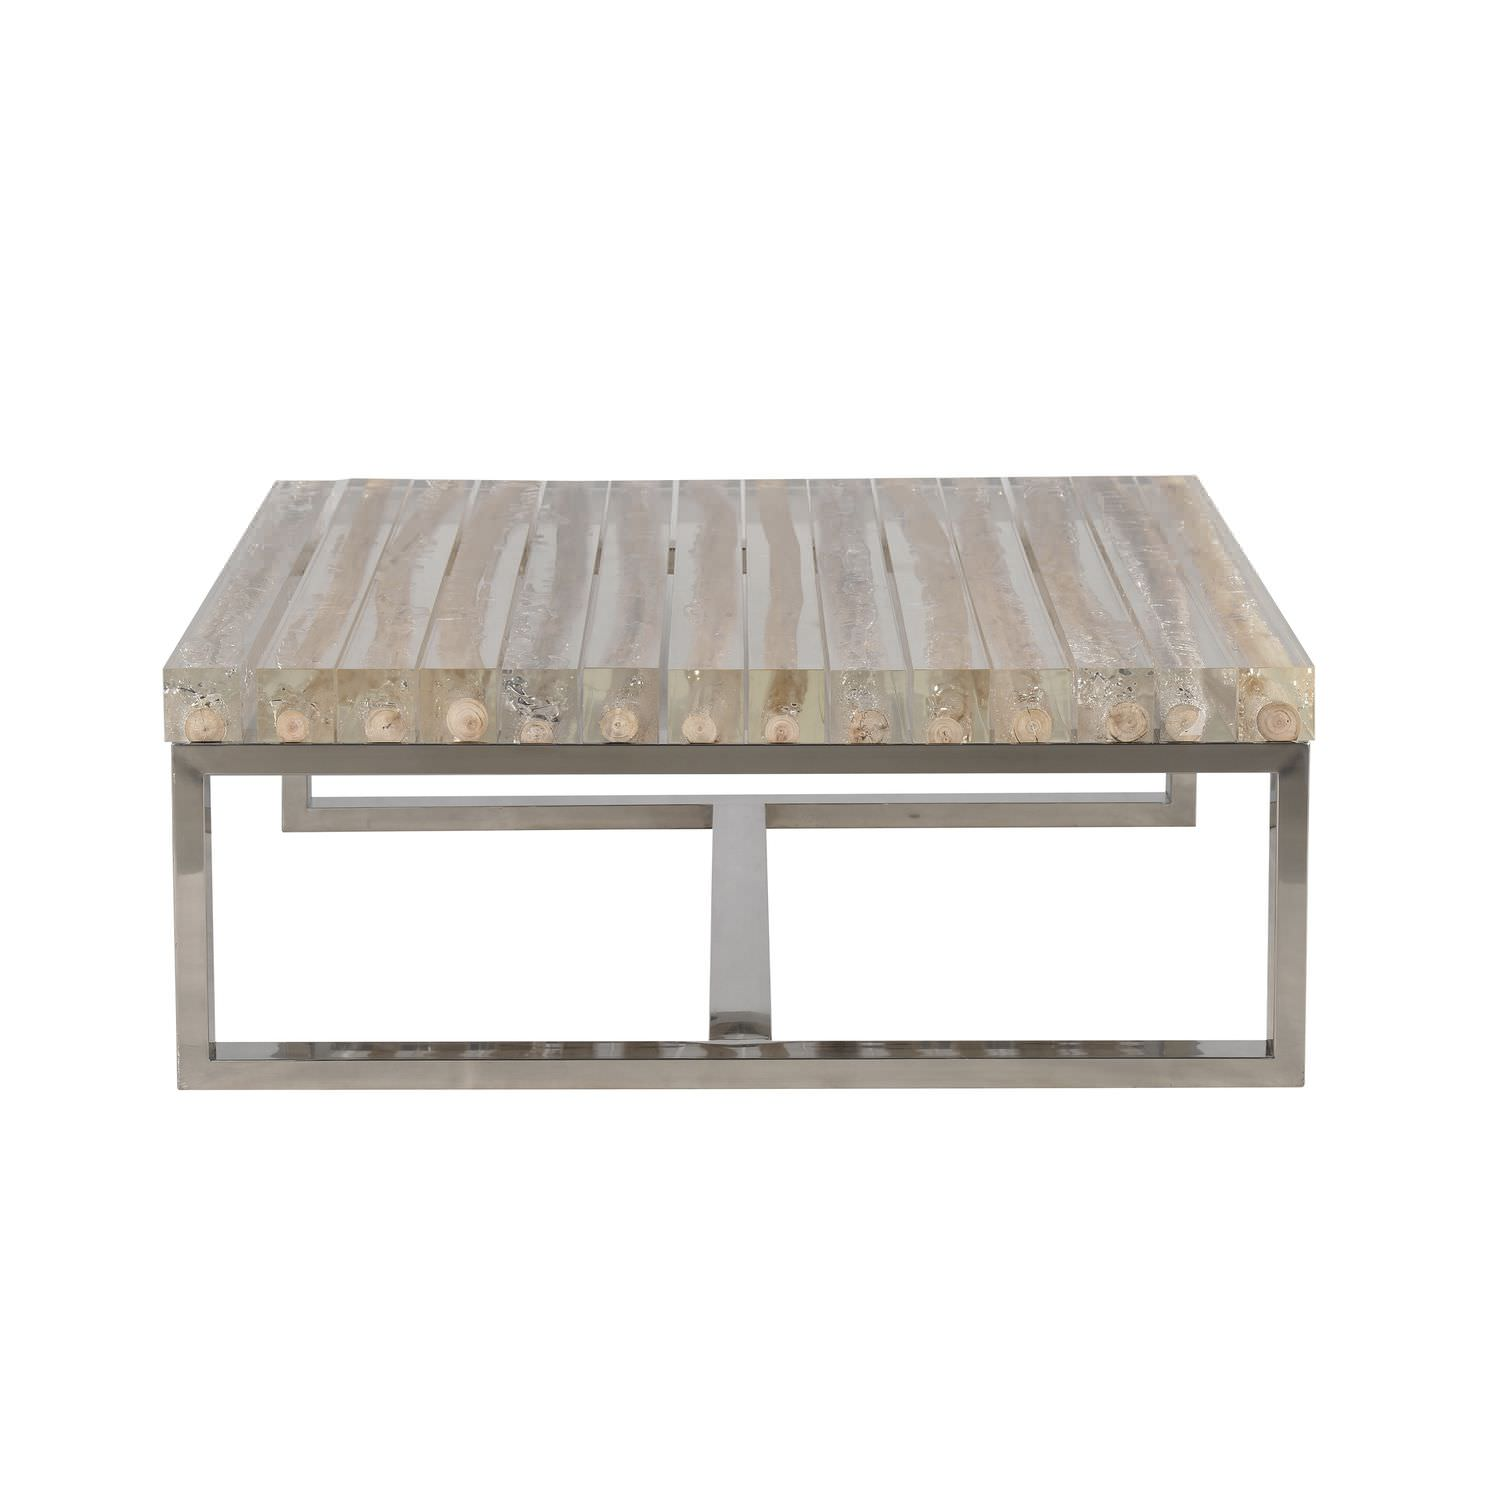 low-tables-contemporary-wood-4668-5462249.jpg